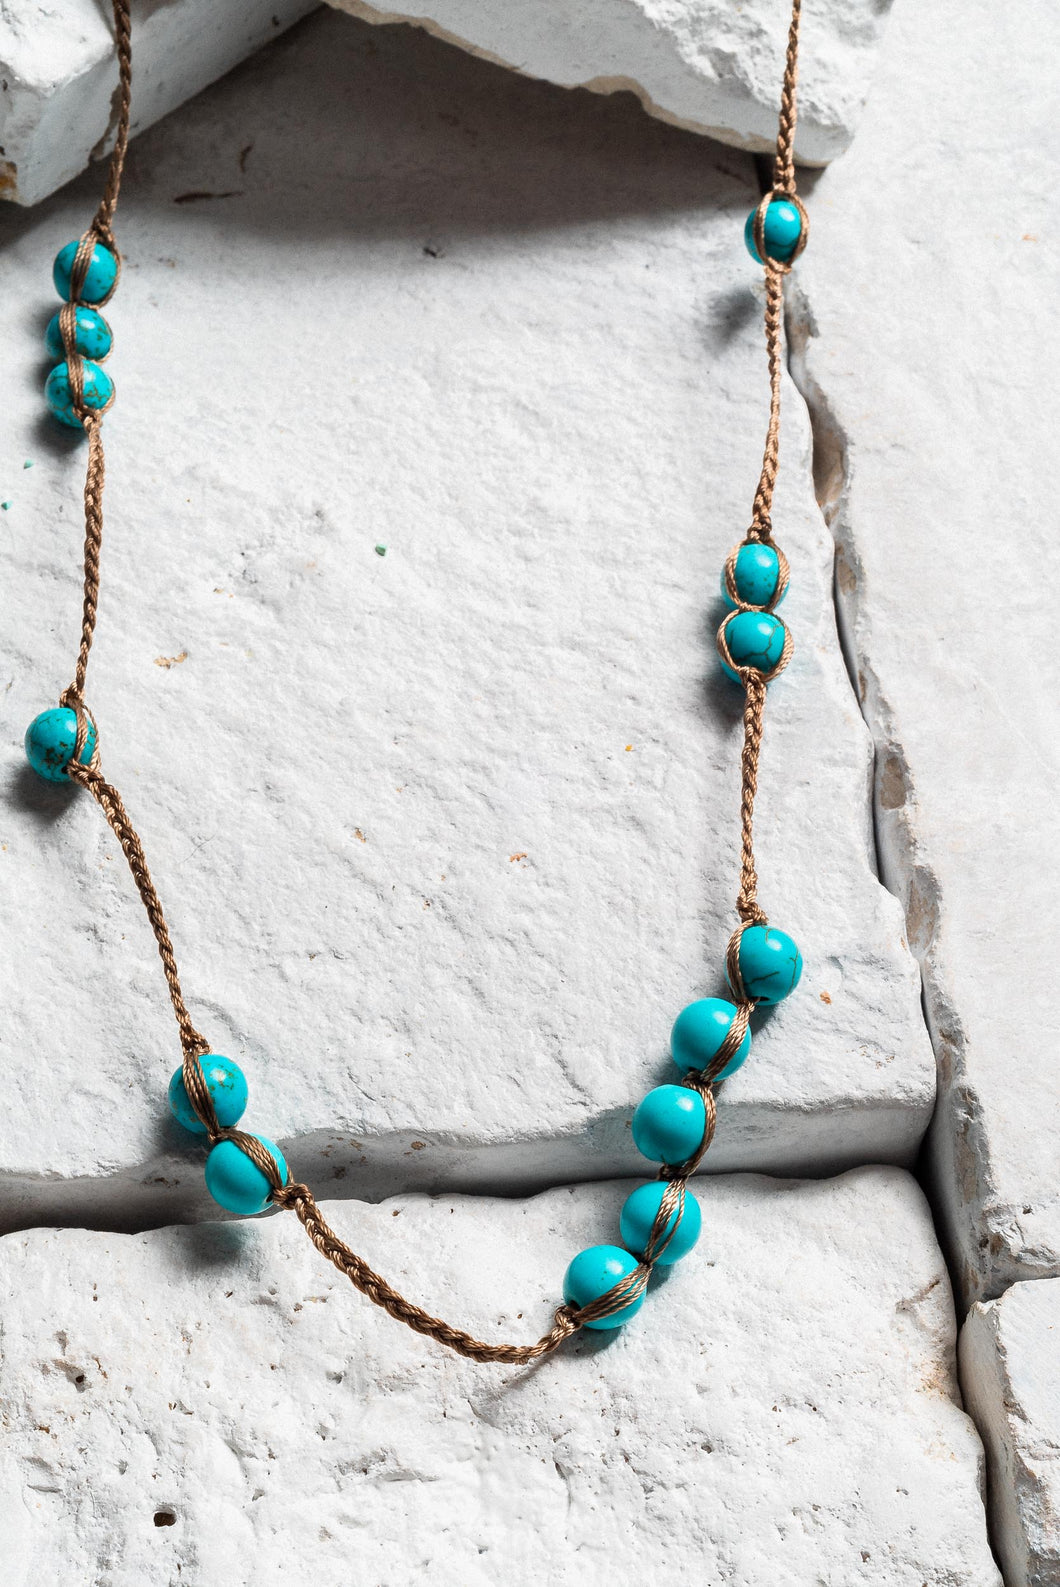 Turquoise Bead Rope Necklace